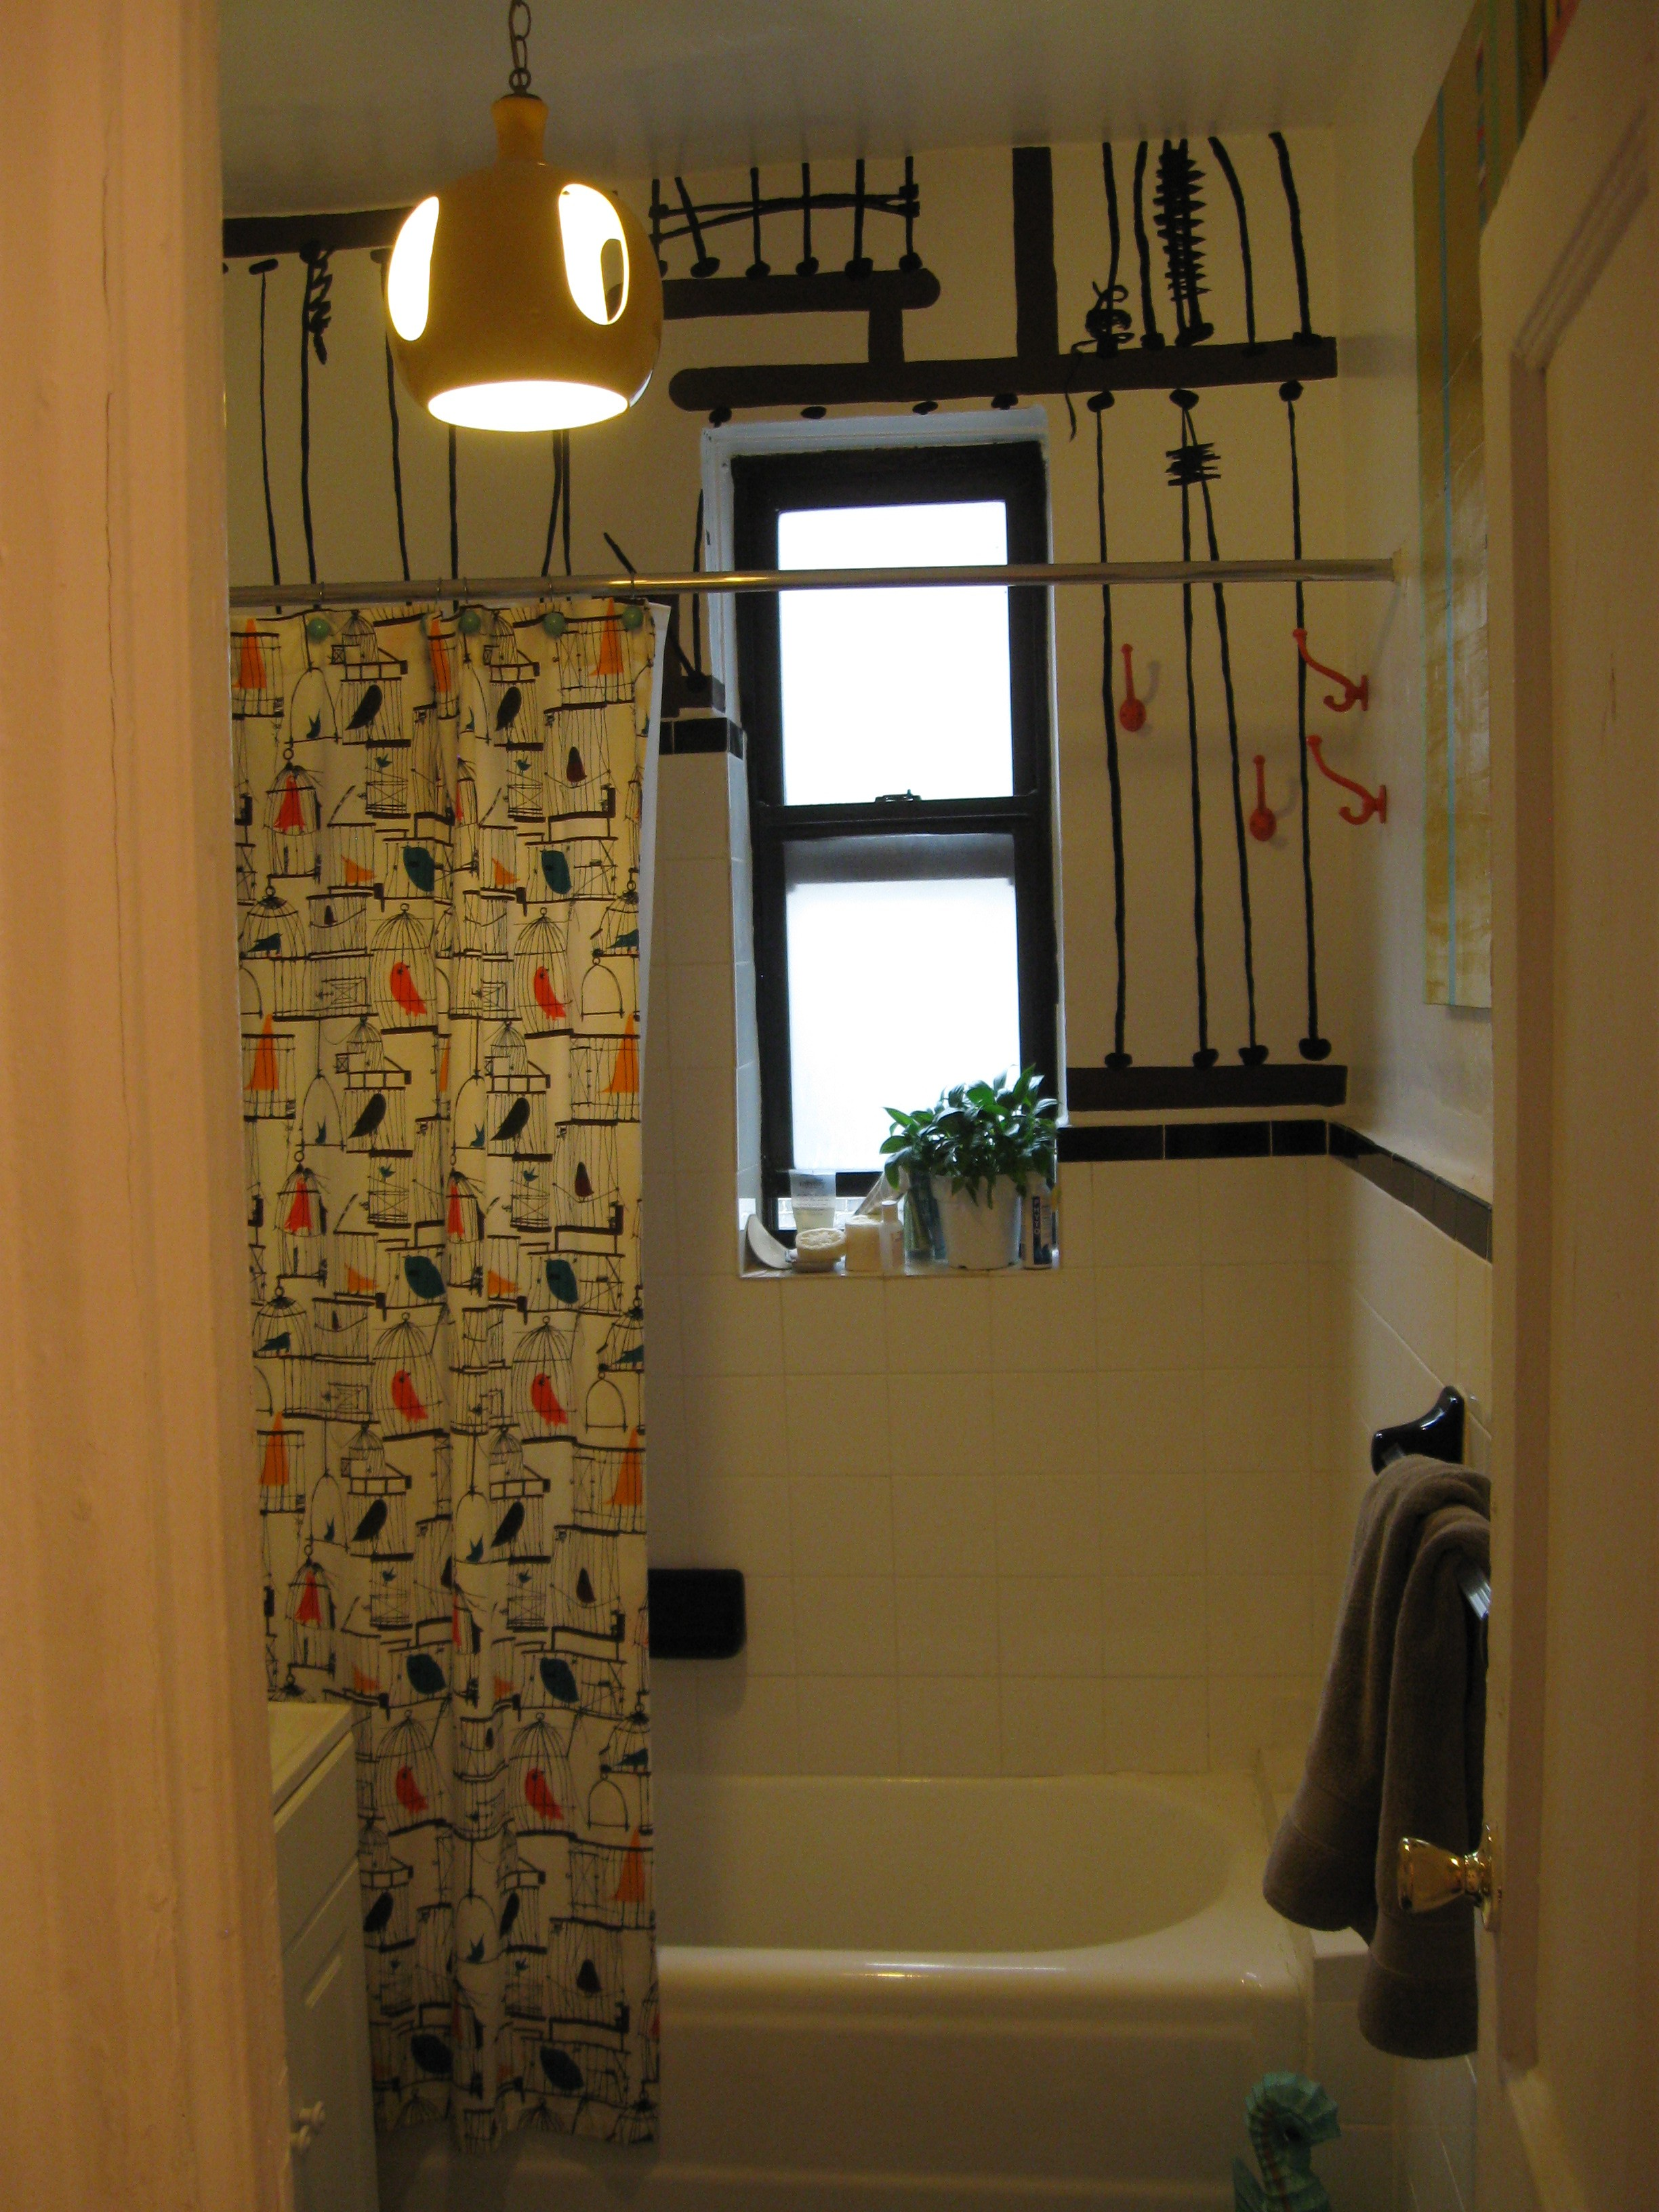 A pic of the bathroom after being painted in stylized pattern